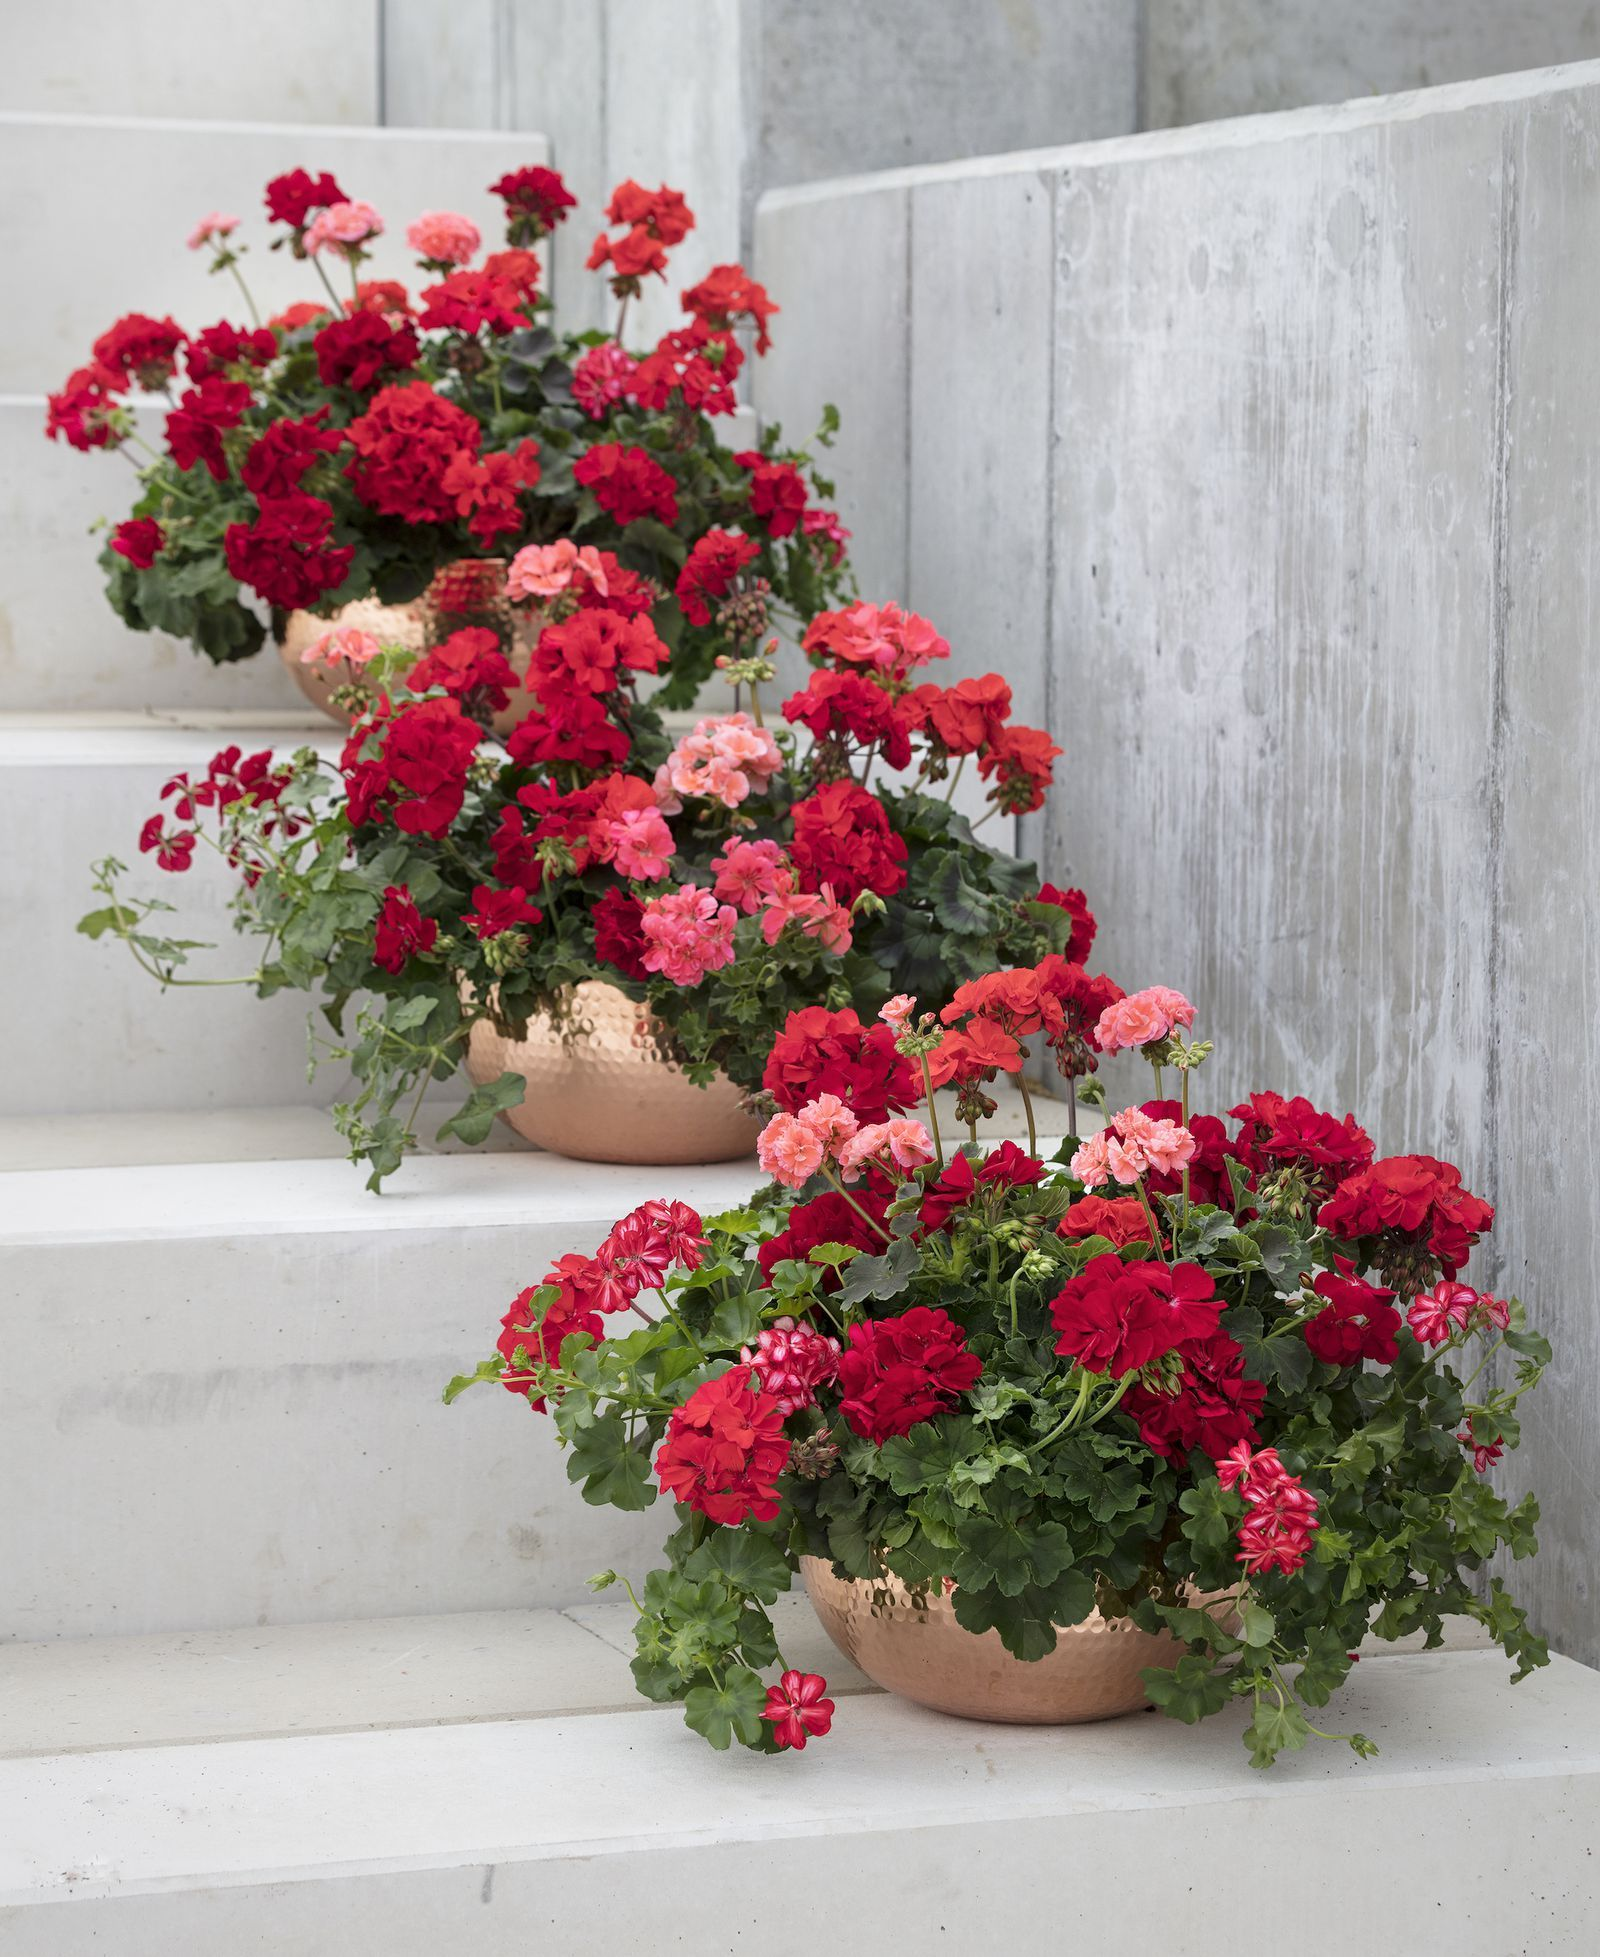 Geraniums: 5 flower trends you need to embrace in your garden this summer